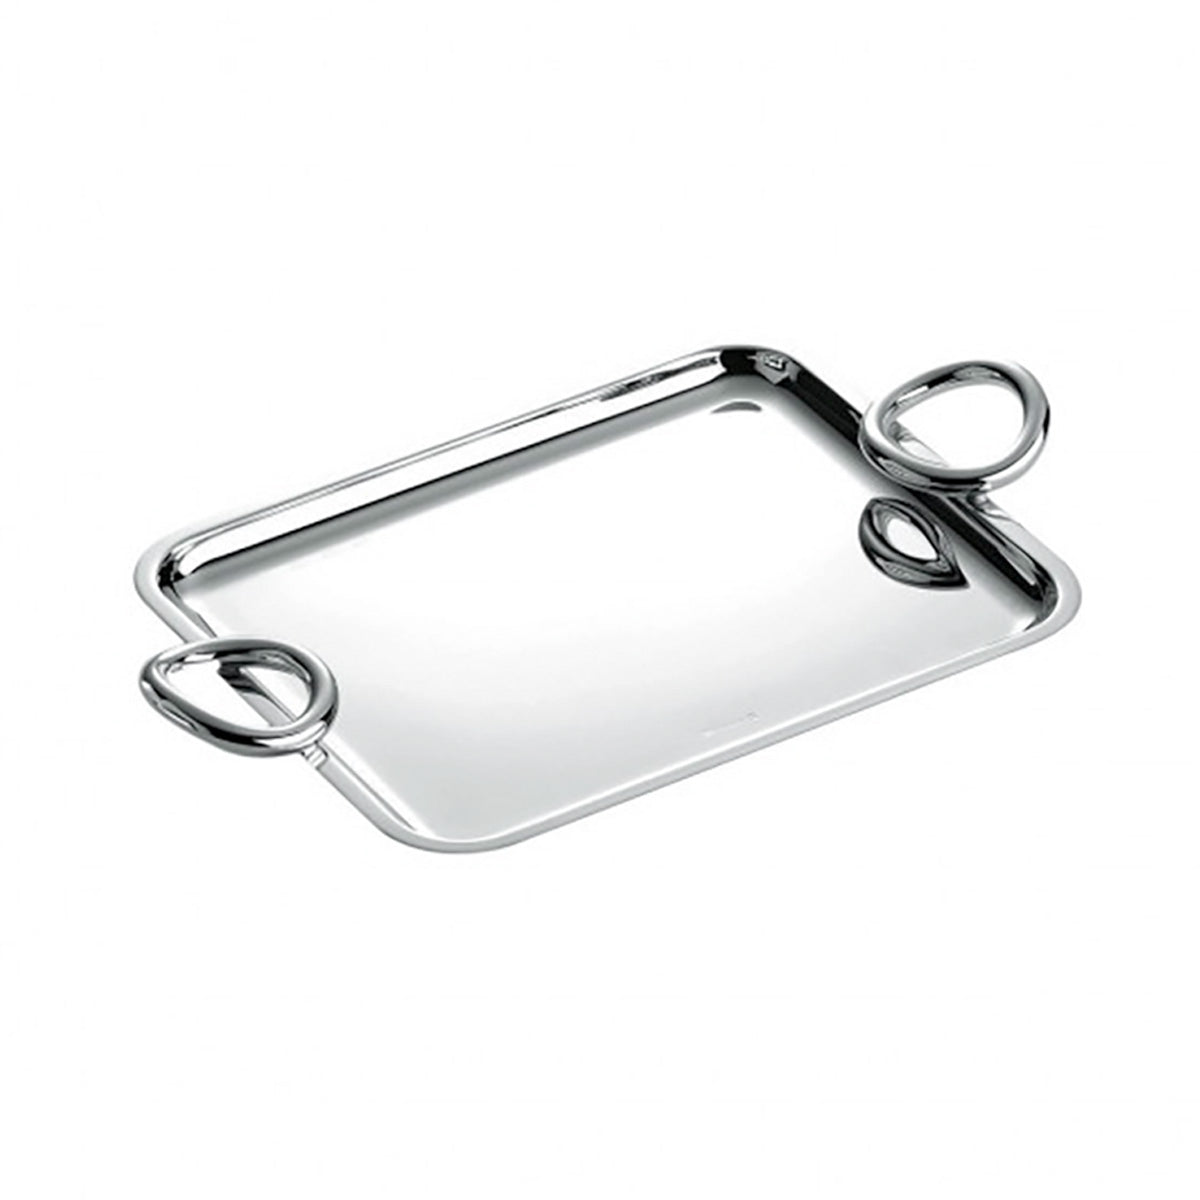 Vertigo Letter Tray, Small